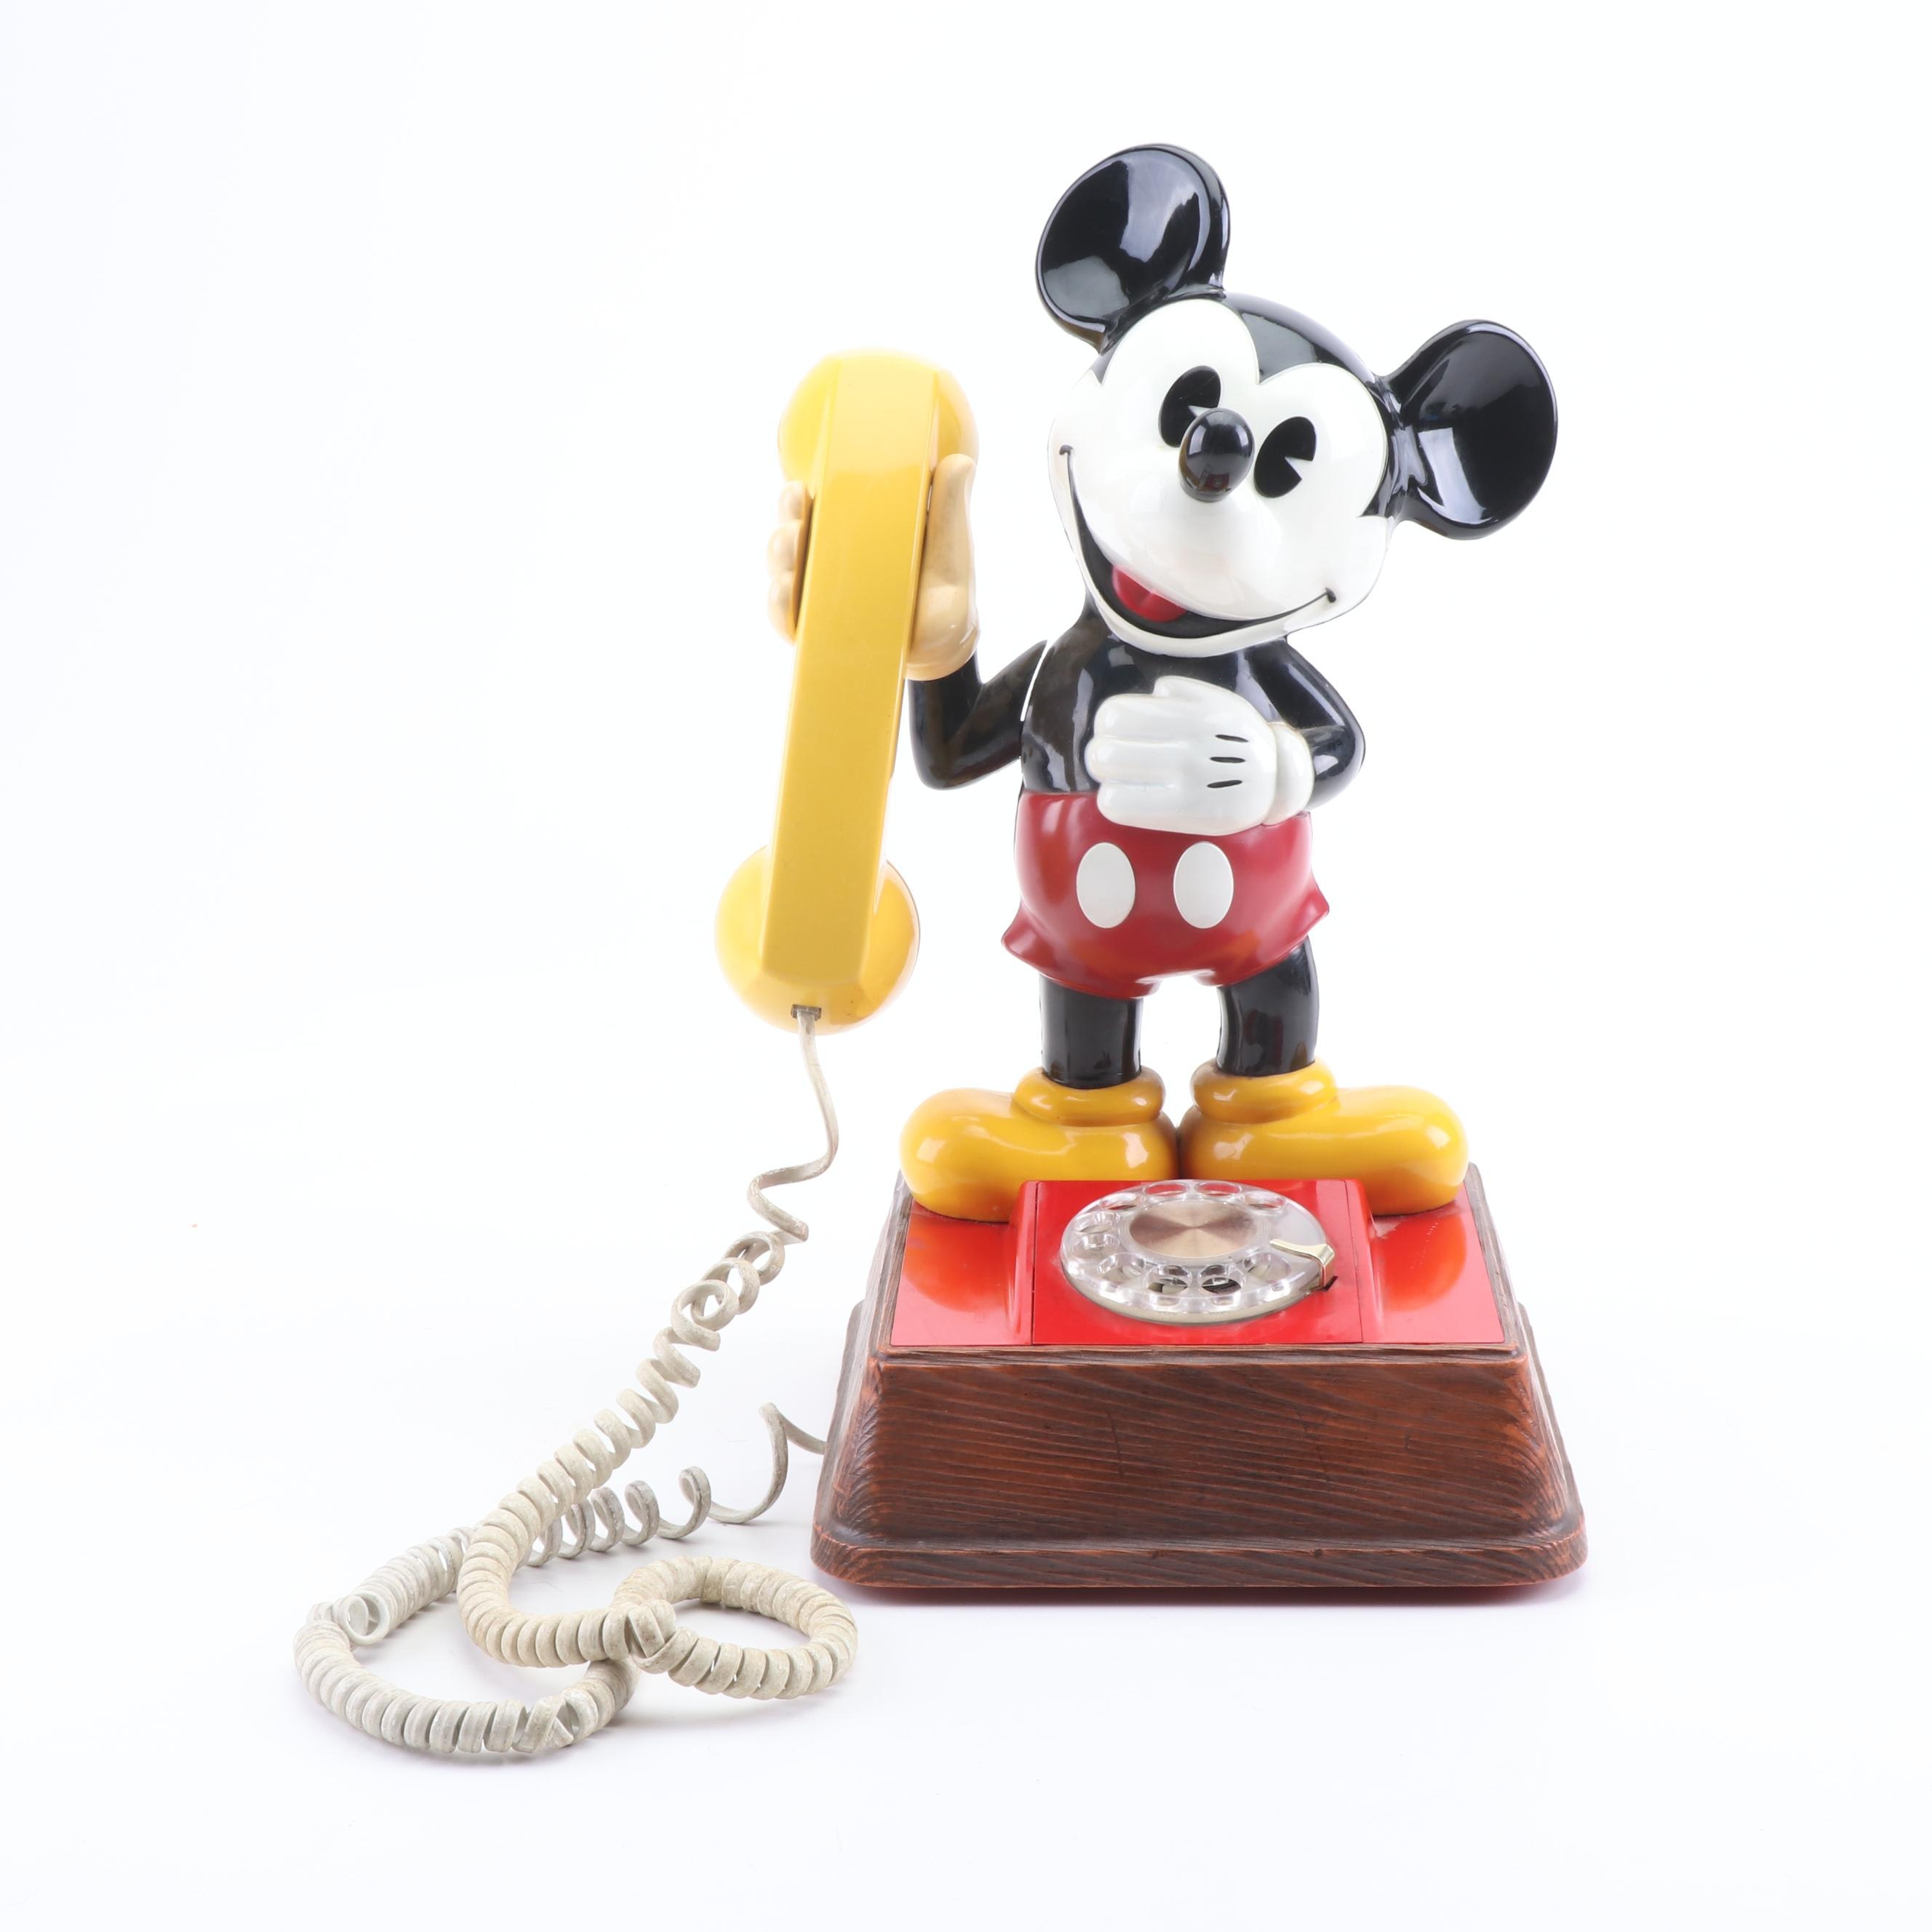 Mickey Mouse Rotary Telephone, 1976